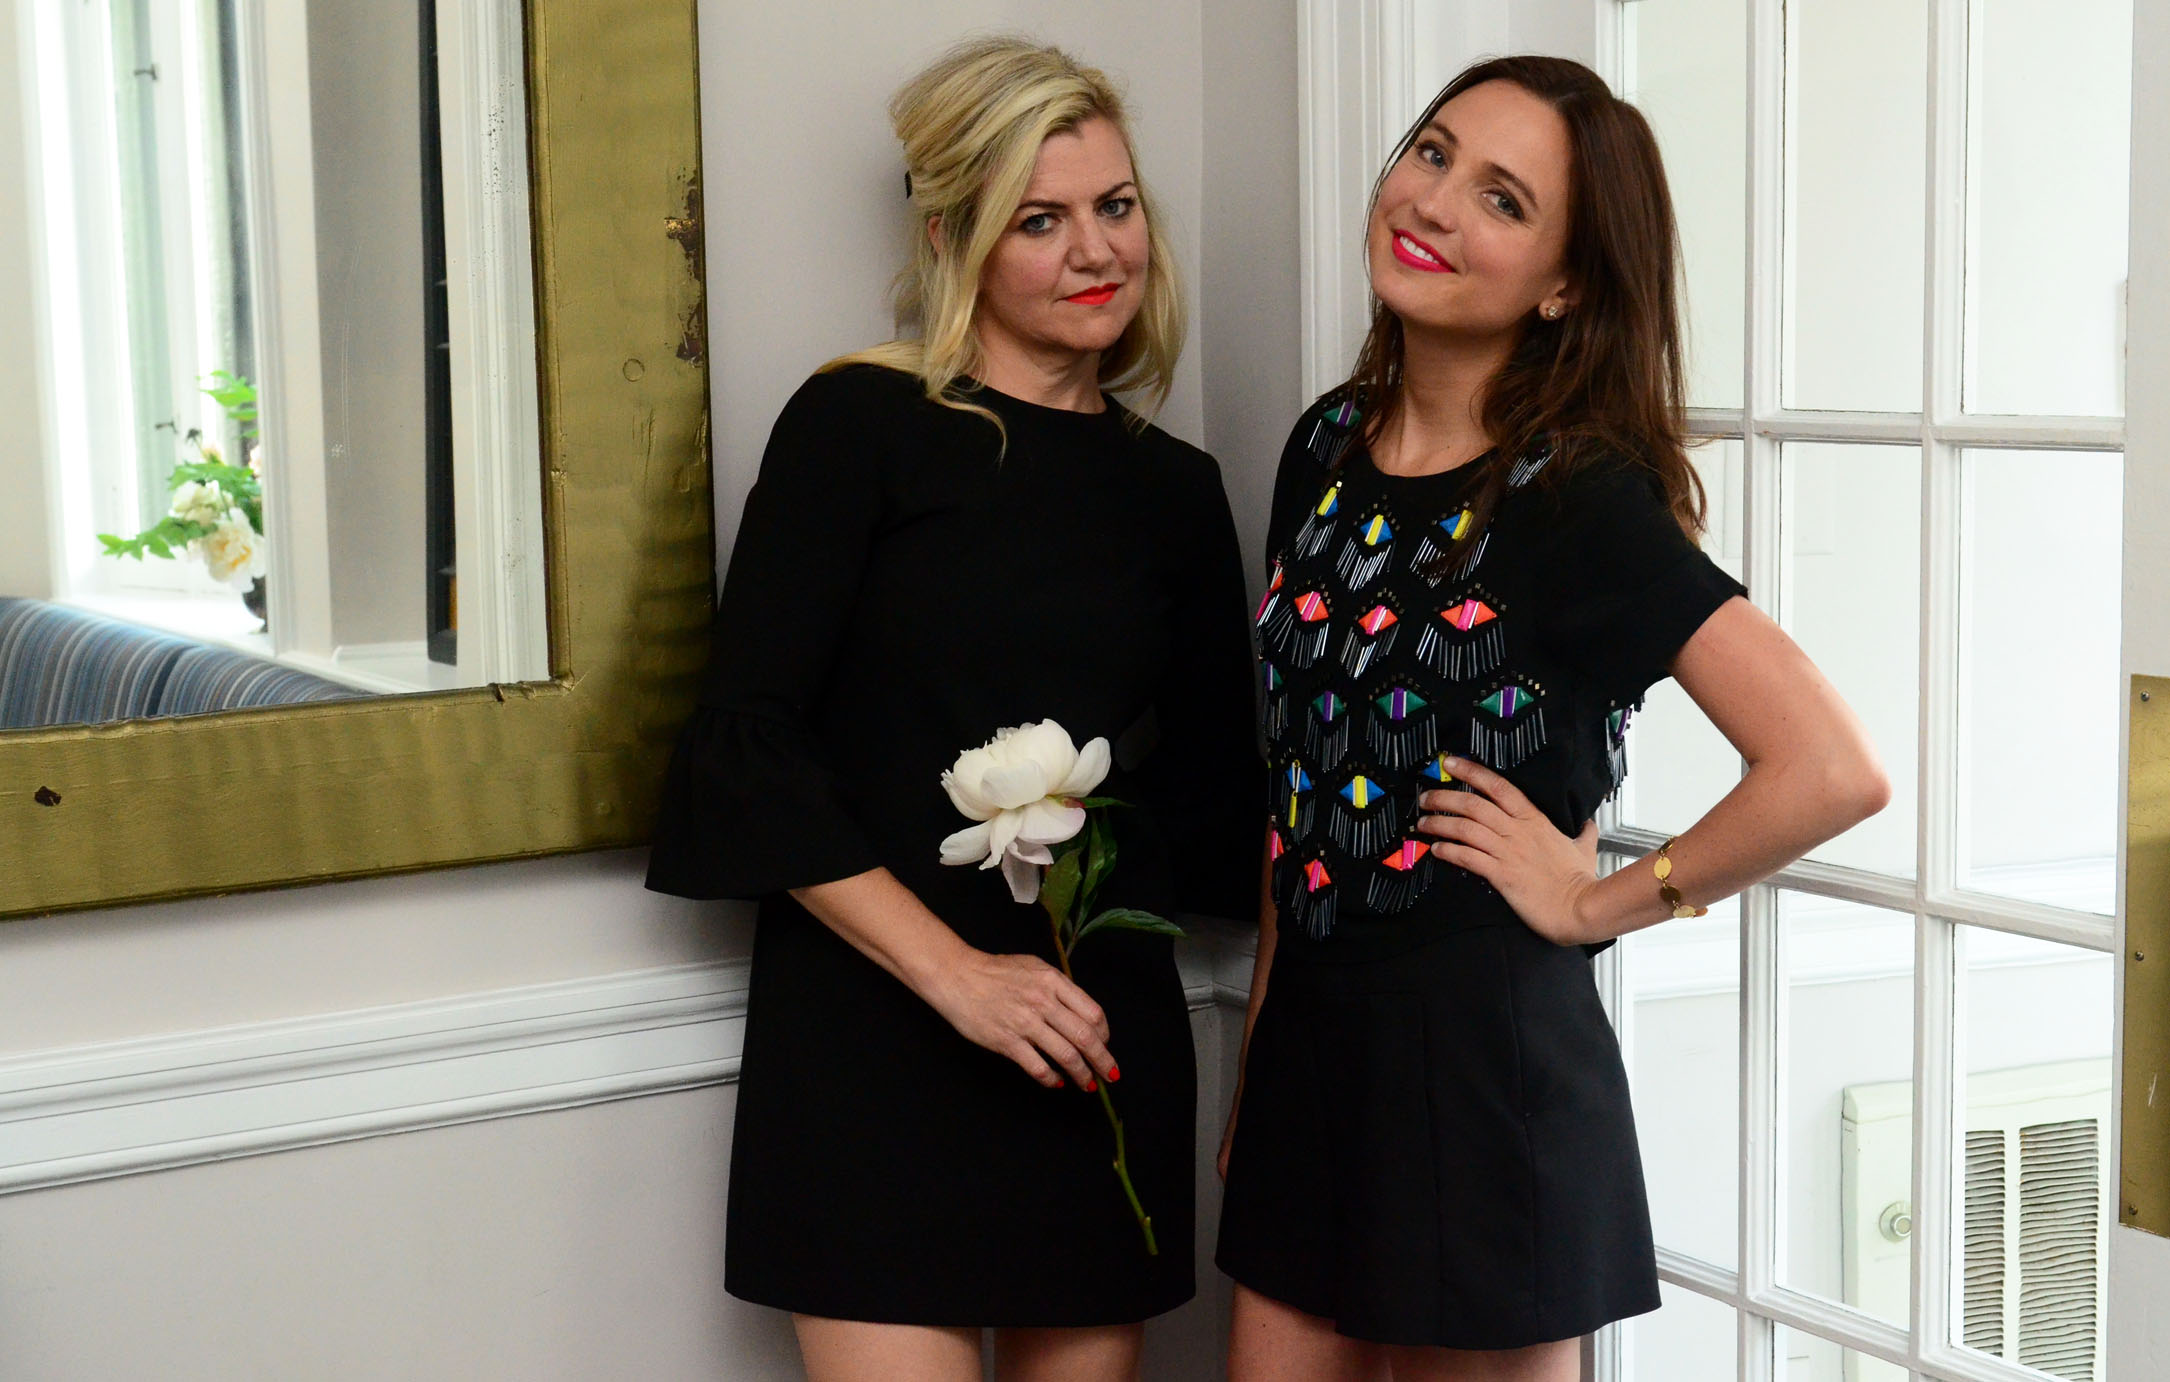 women-i-work-with-going-out-in-style-erin-furey-cassidy-iverson-black-outfits